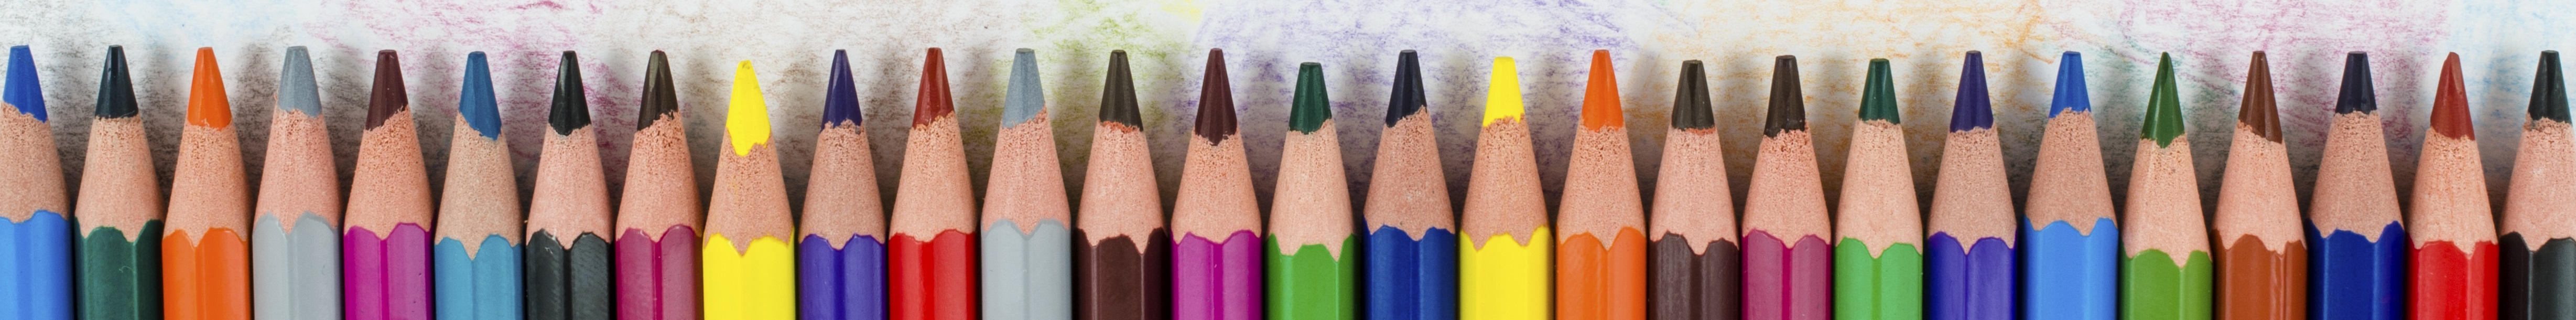 Color-pencils-in-a-row-with-colorful-background-000076289991_Full.jpg